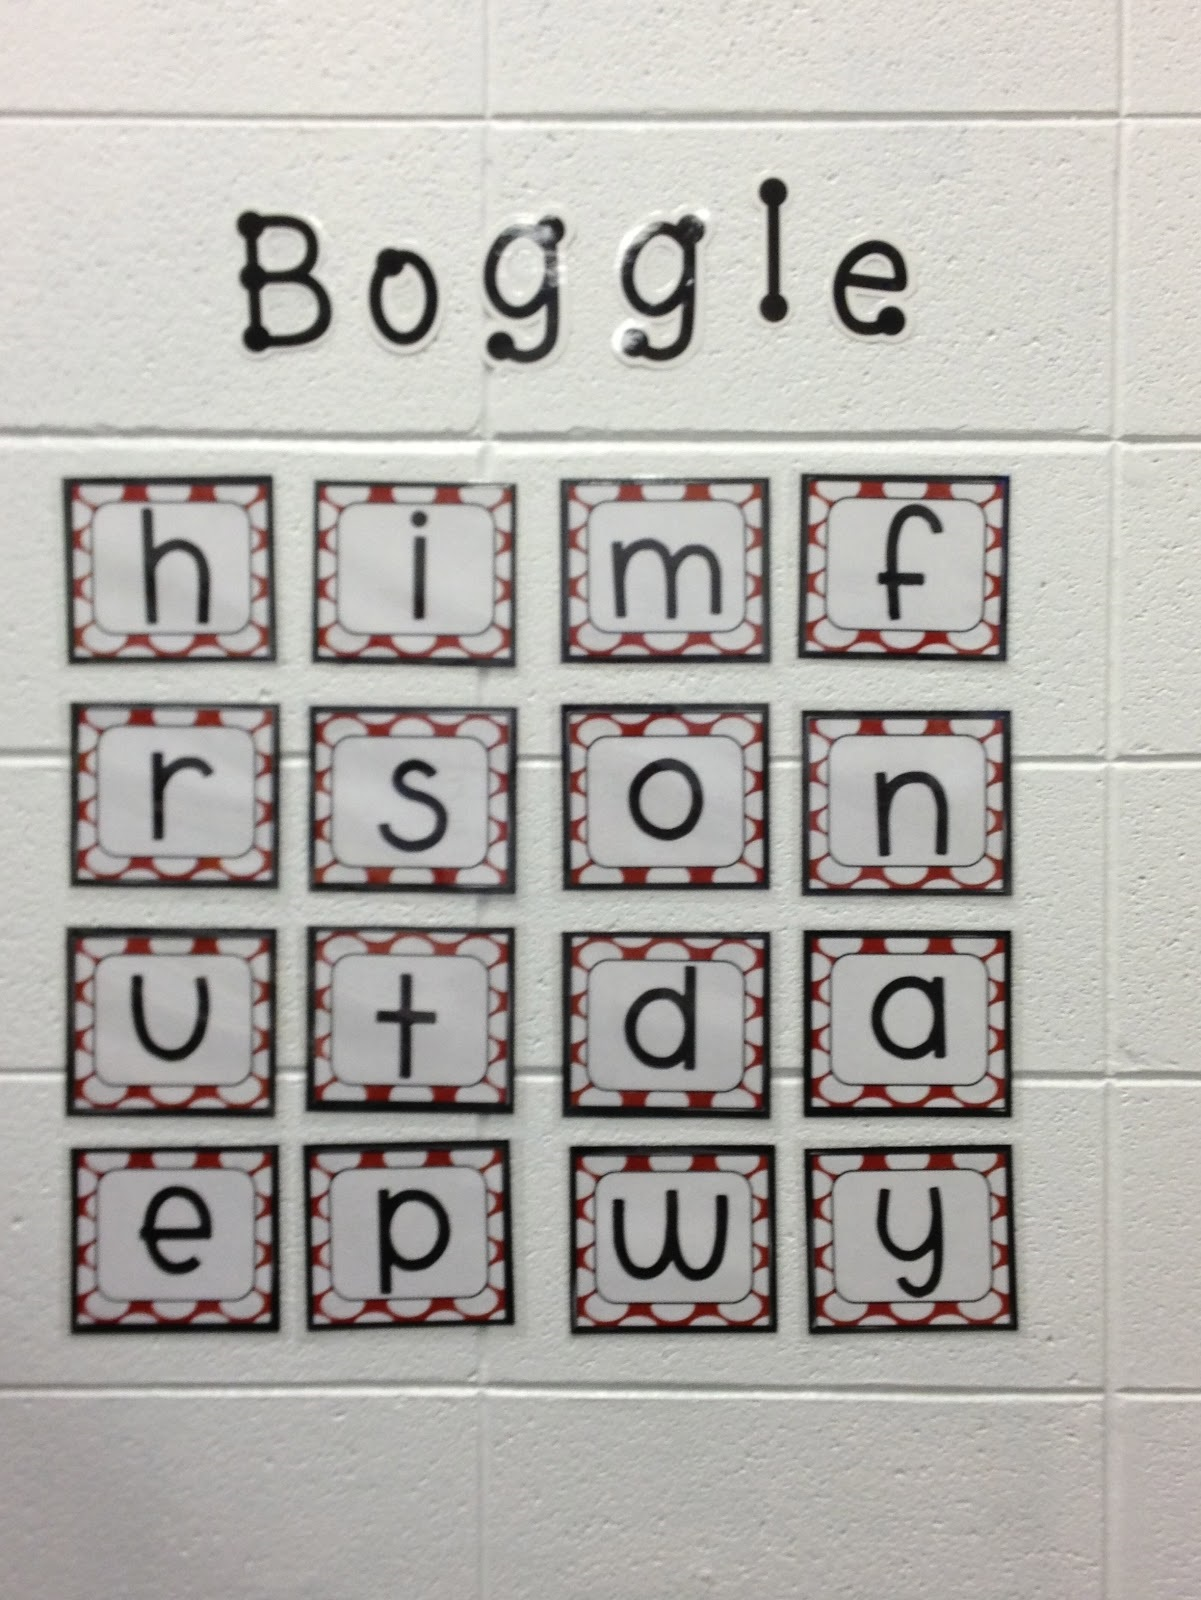 The Game Boggle Sheets To Print